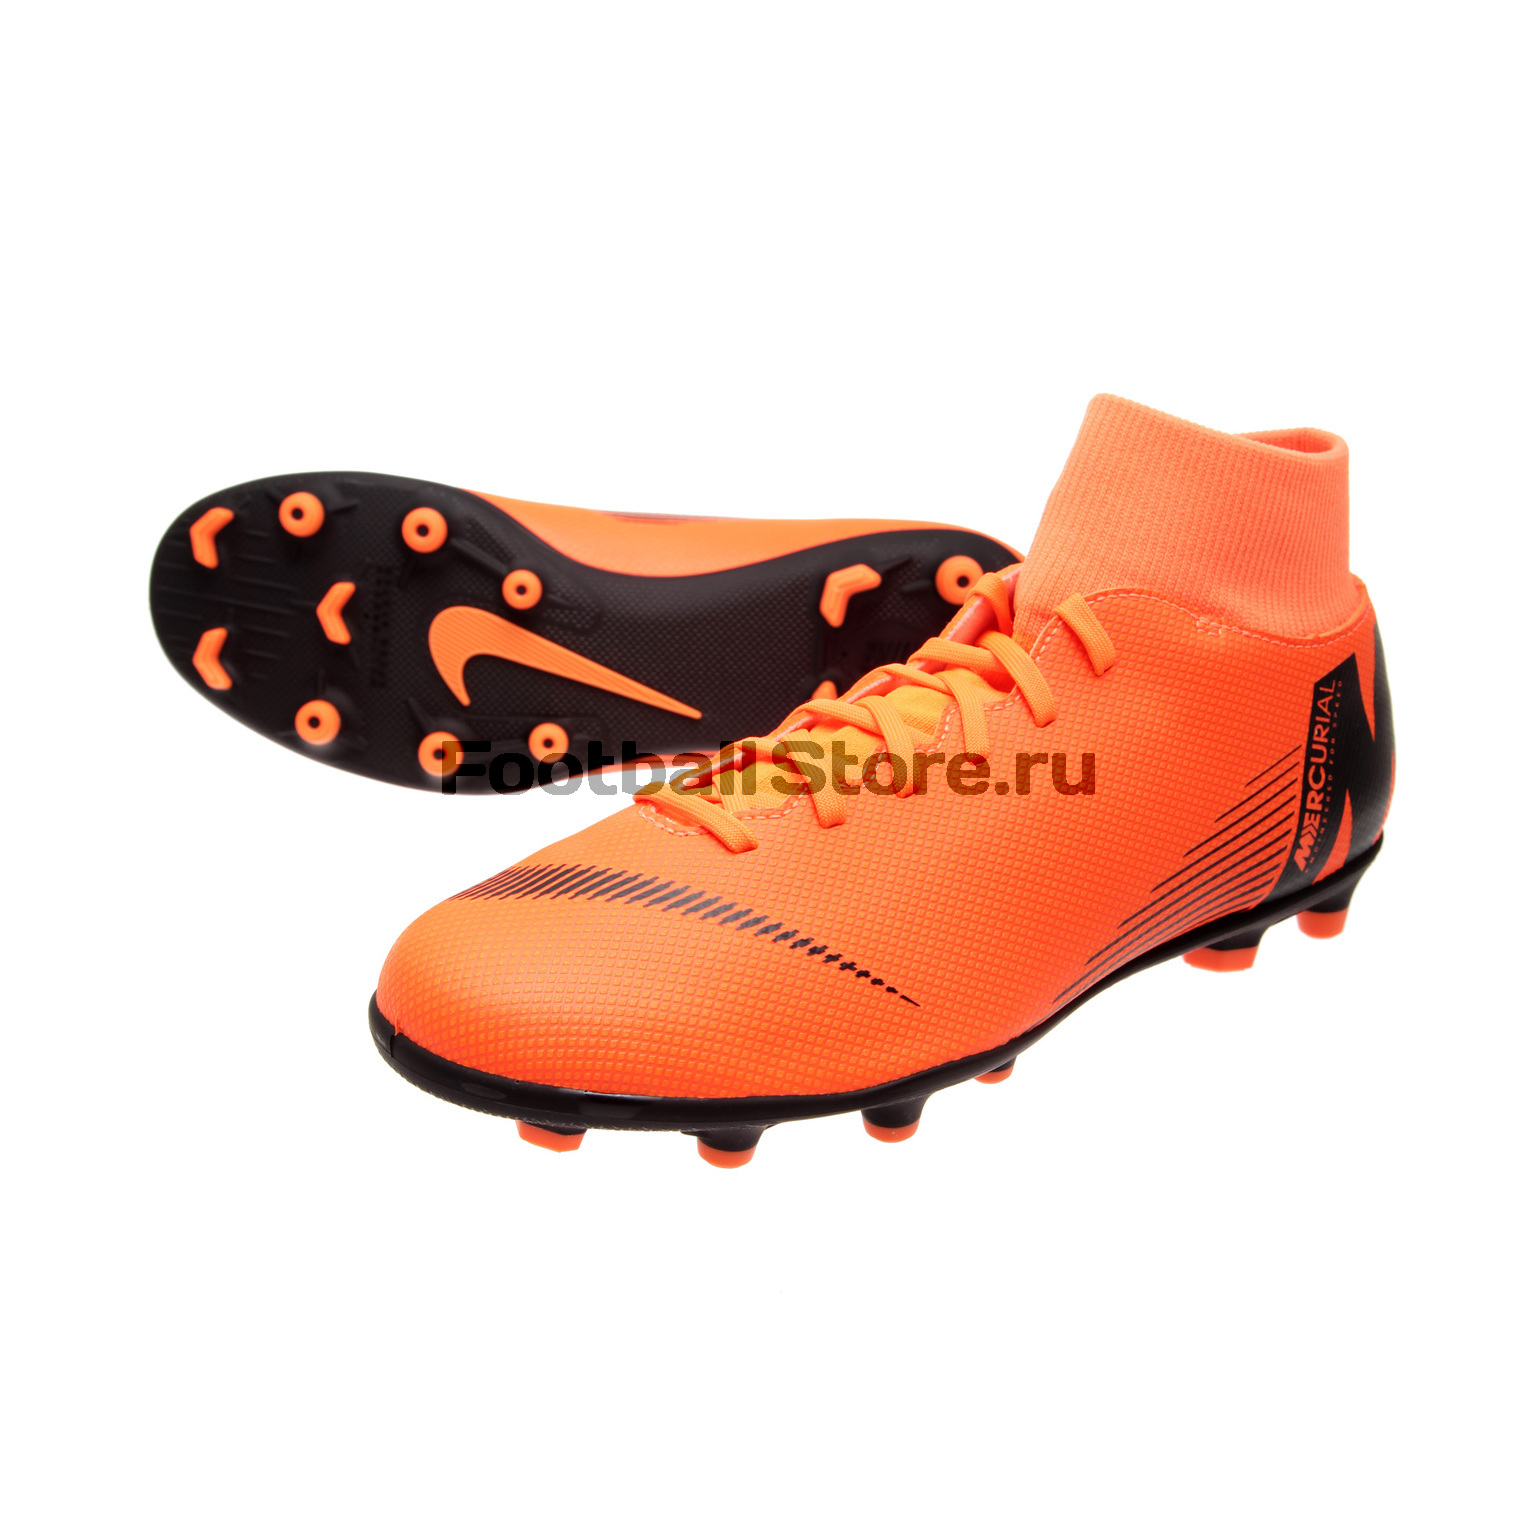 Бутсы Nike SuperFly 6 Club FG/MG AH7363-810 бутсы nike шиповки nike jr tiempox legend vi tf 819191 018